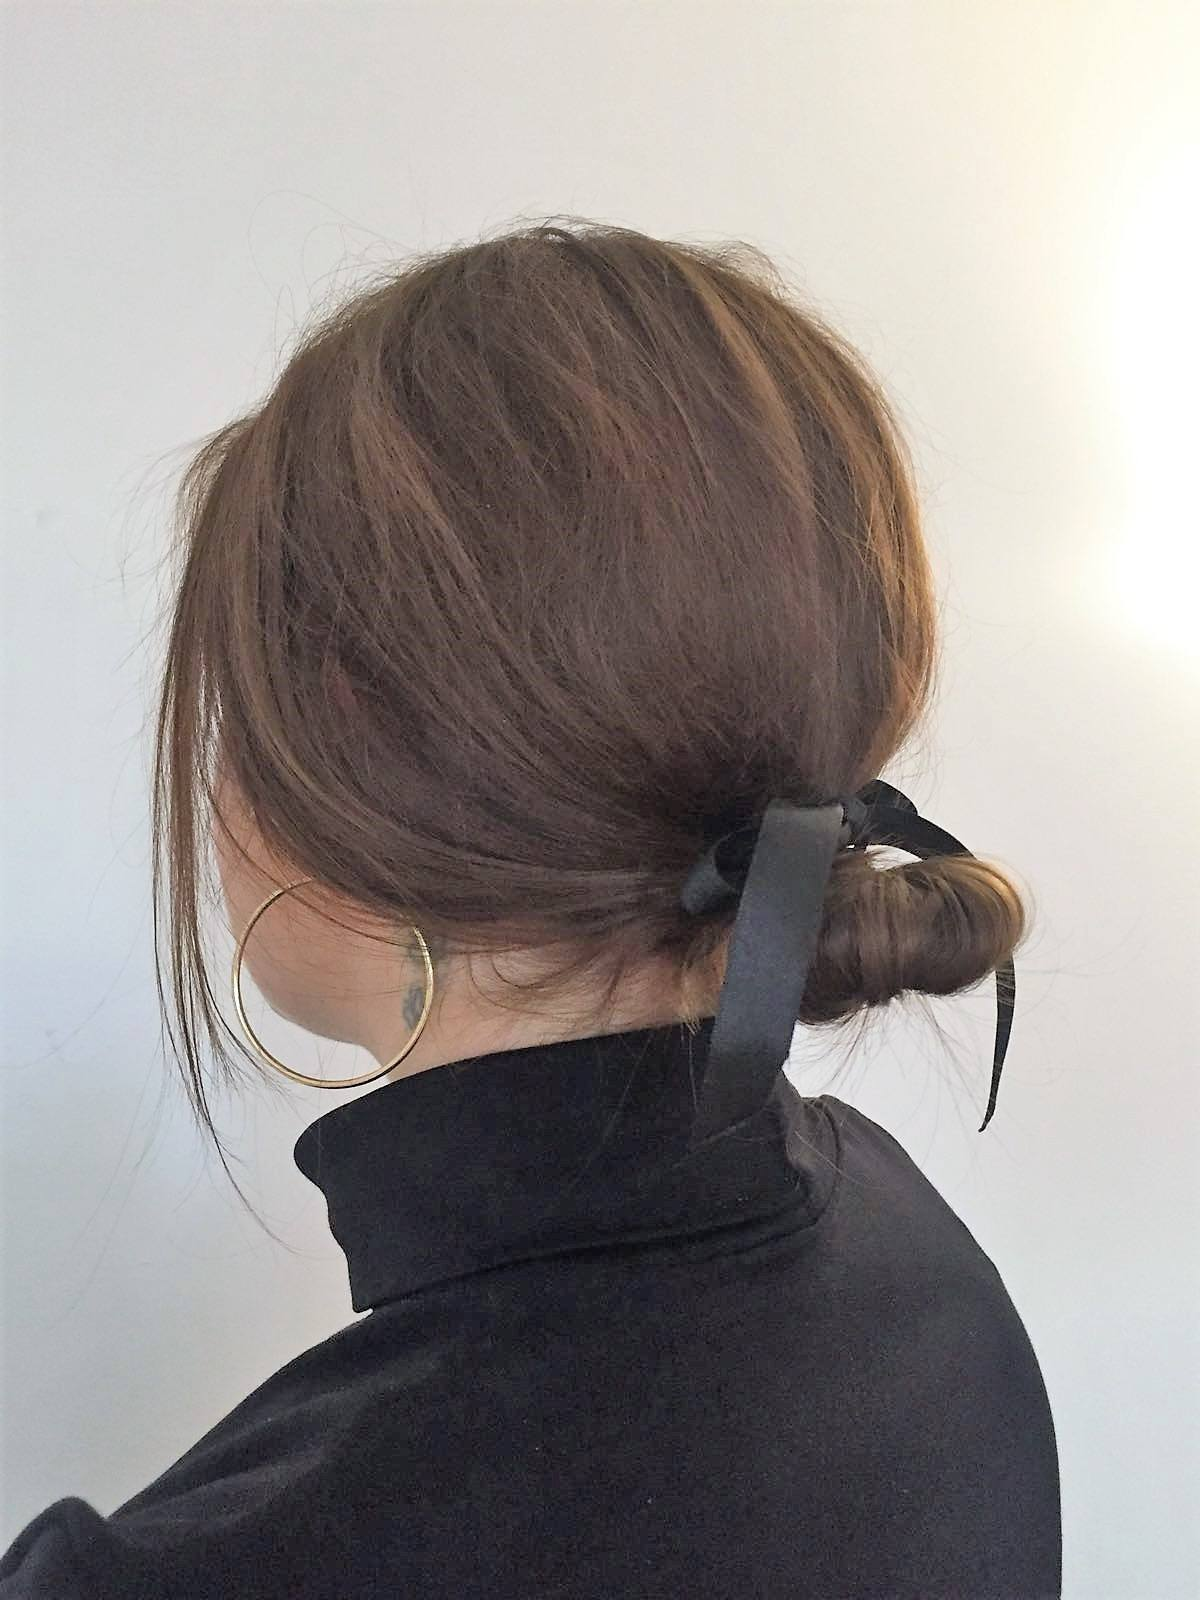 close up shot of woman with short hair that's styled into a low bun with a bow around it, wearing black top and hoop earrings